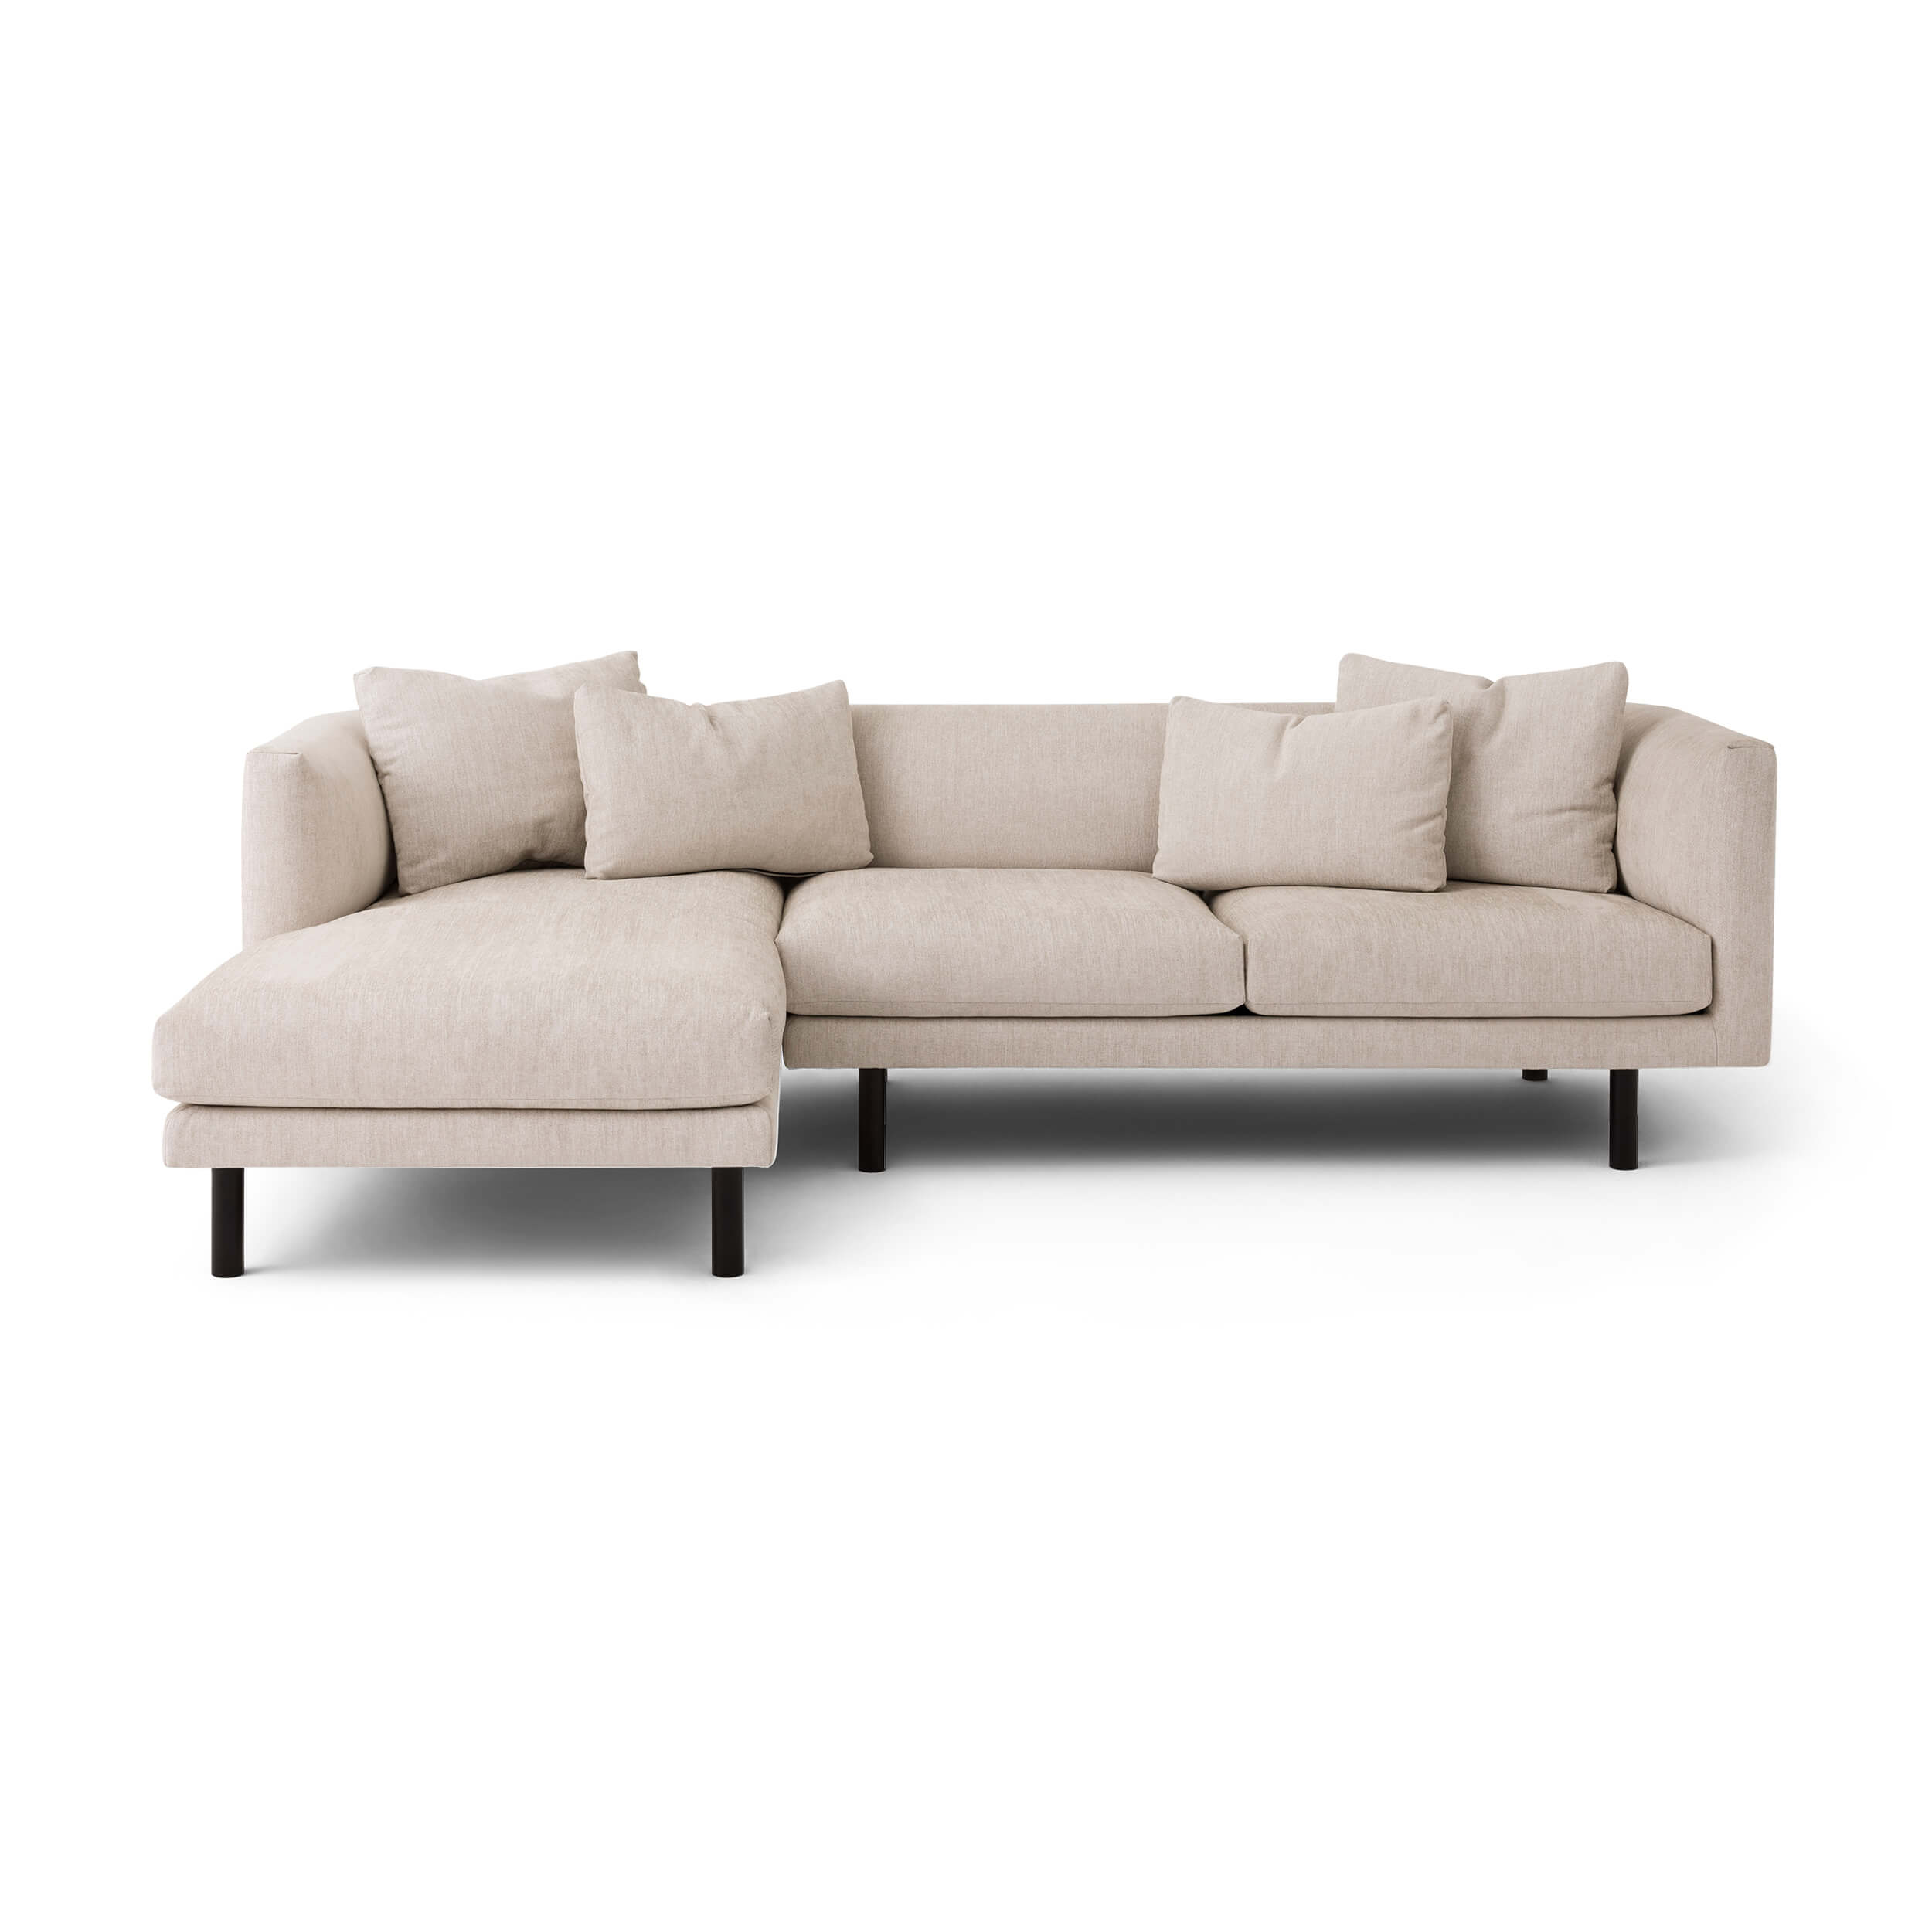 Replay 2 Piece Sectional Sofa With Chaise Fabric Eq3